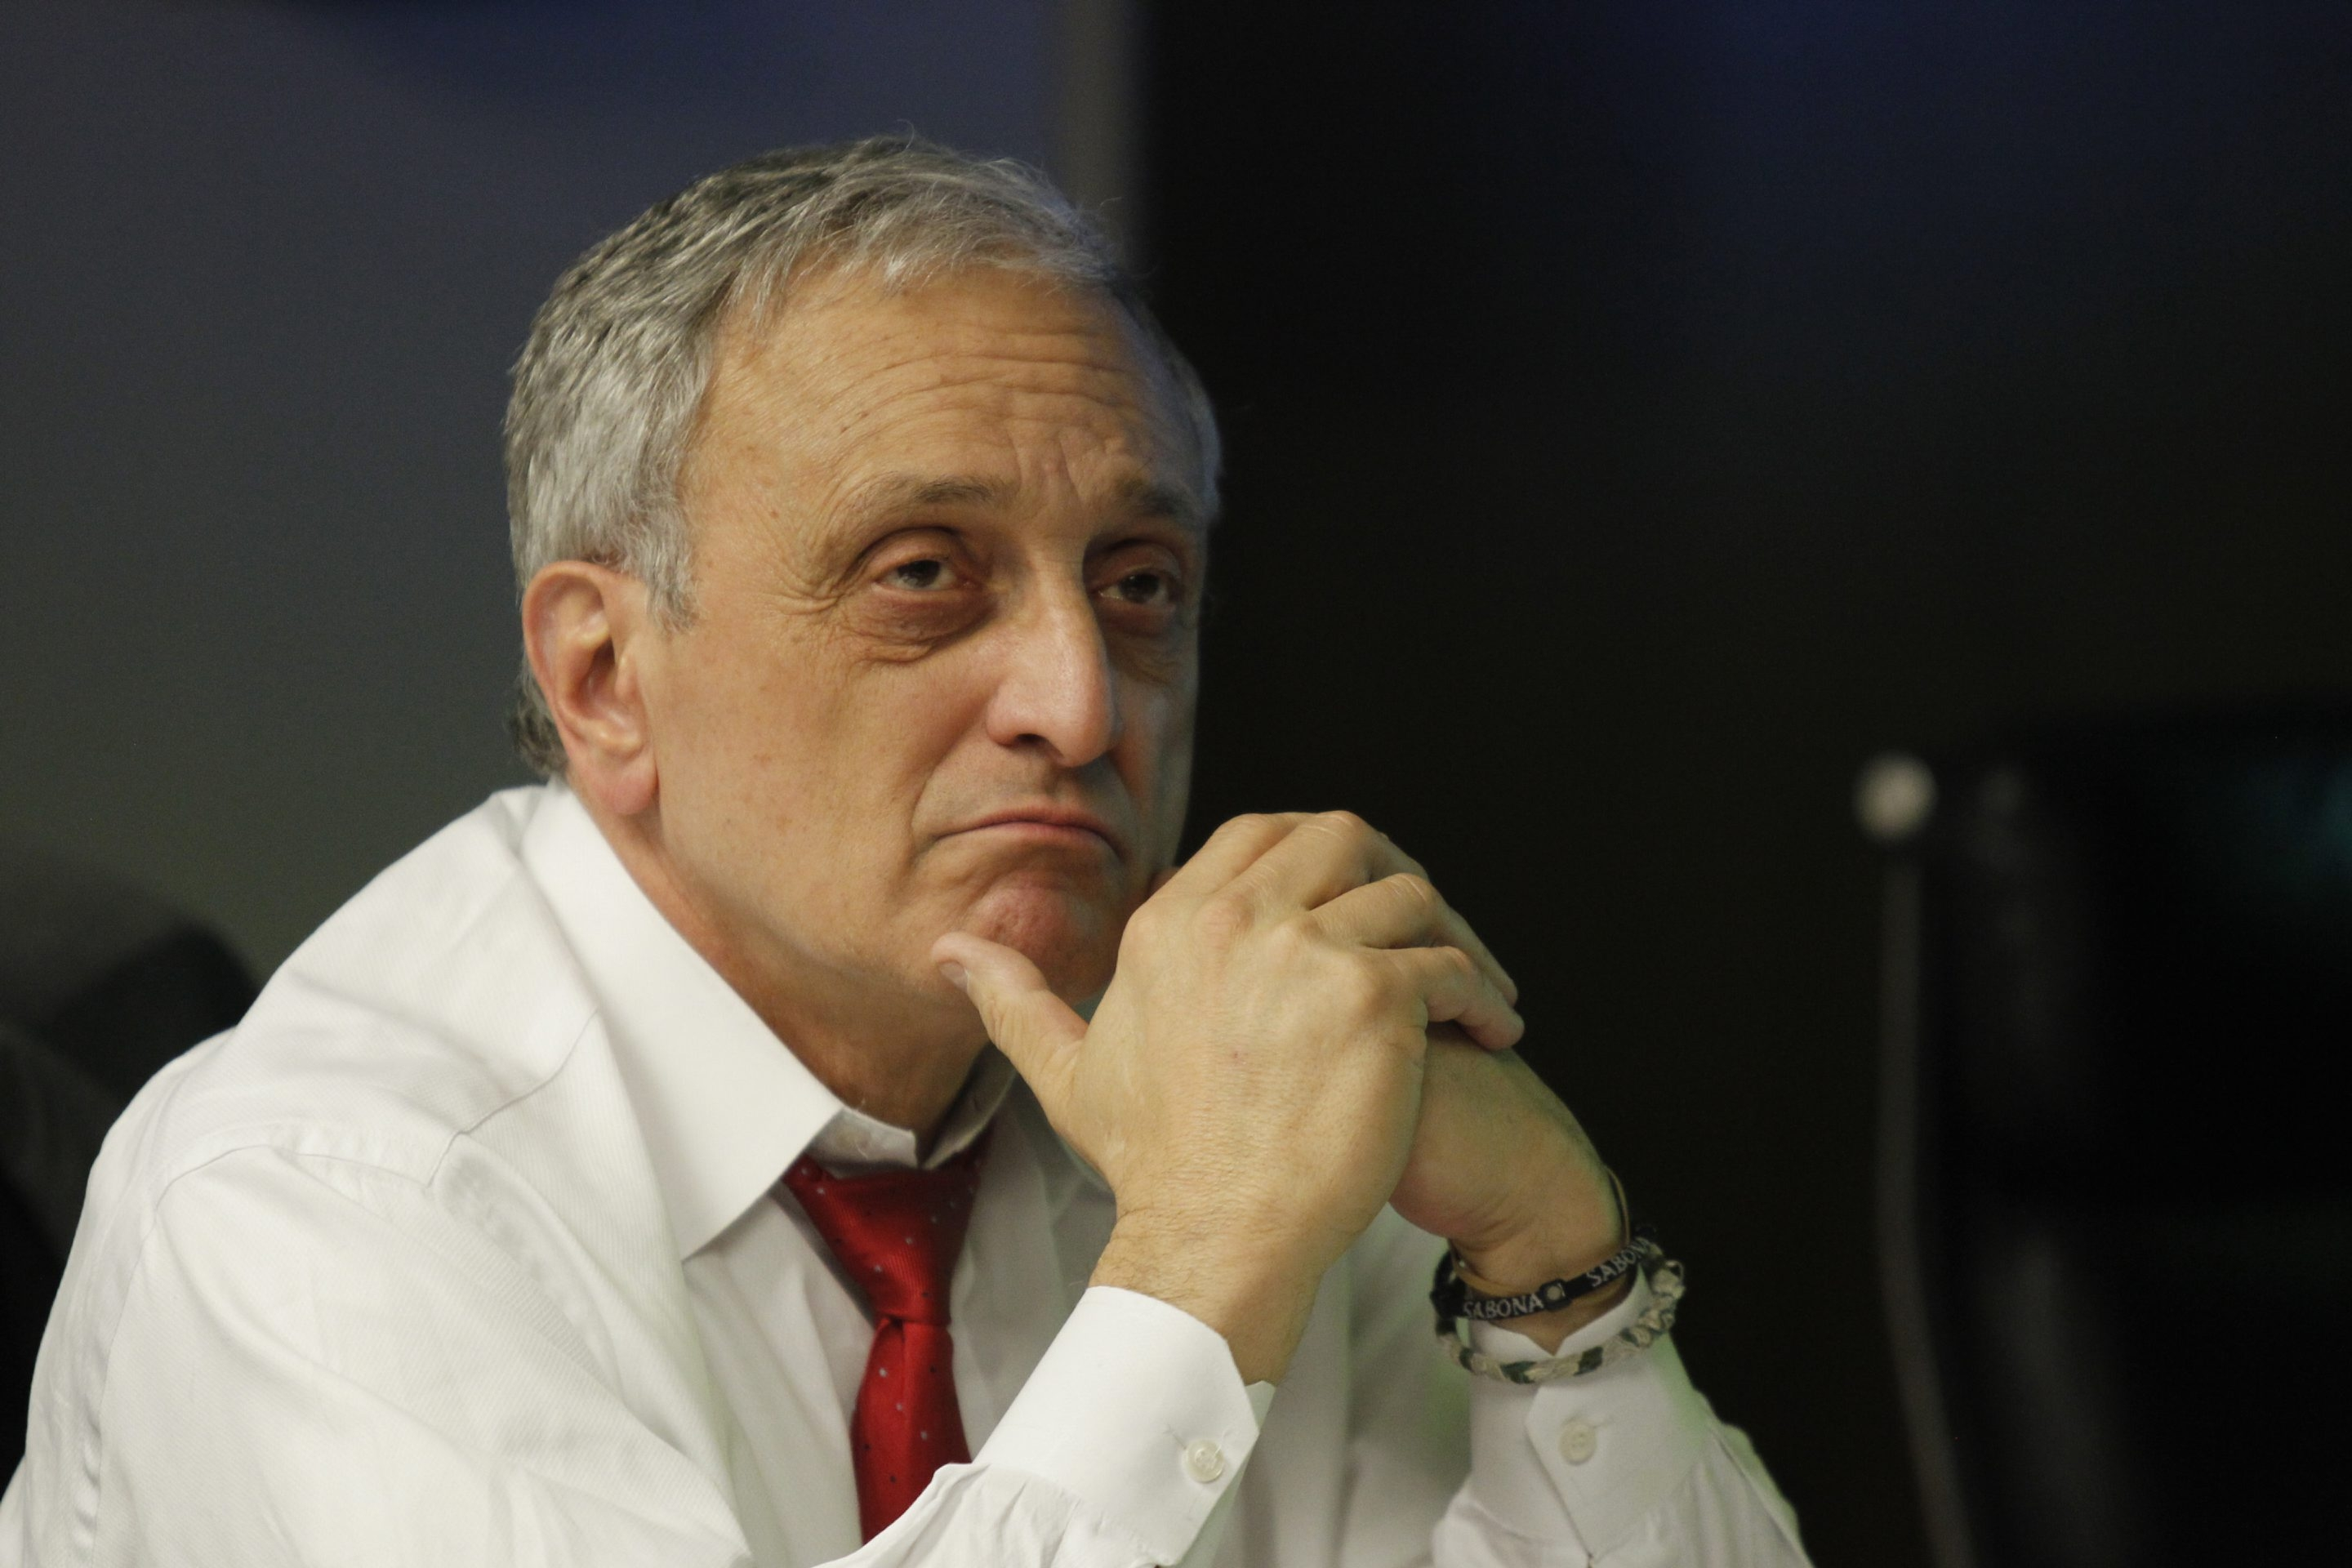 Carl Paladino's comments supporting Joseph A. Mascia have now cost him financially.